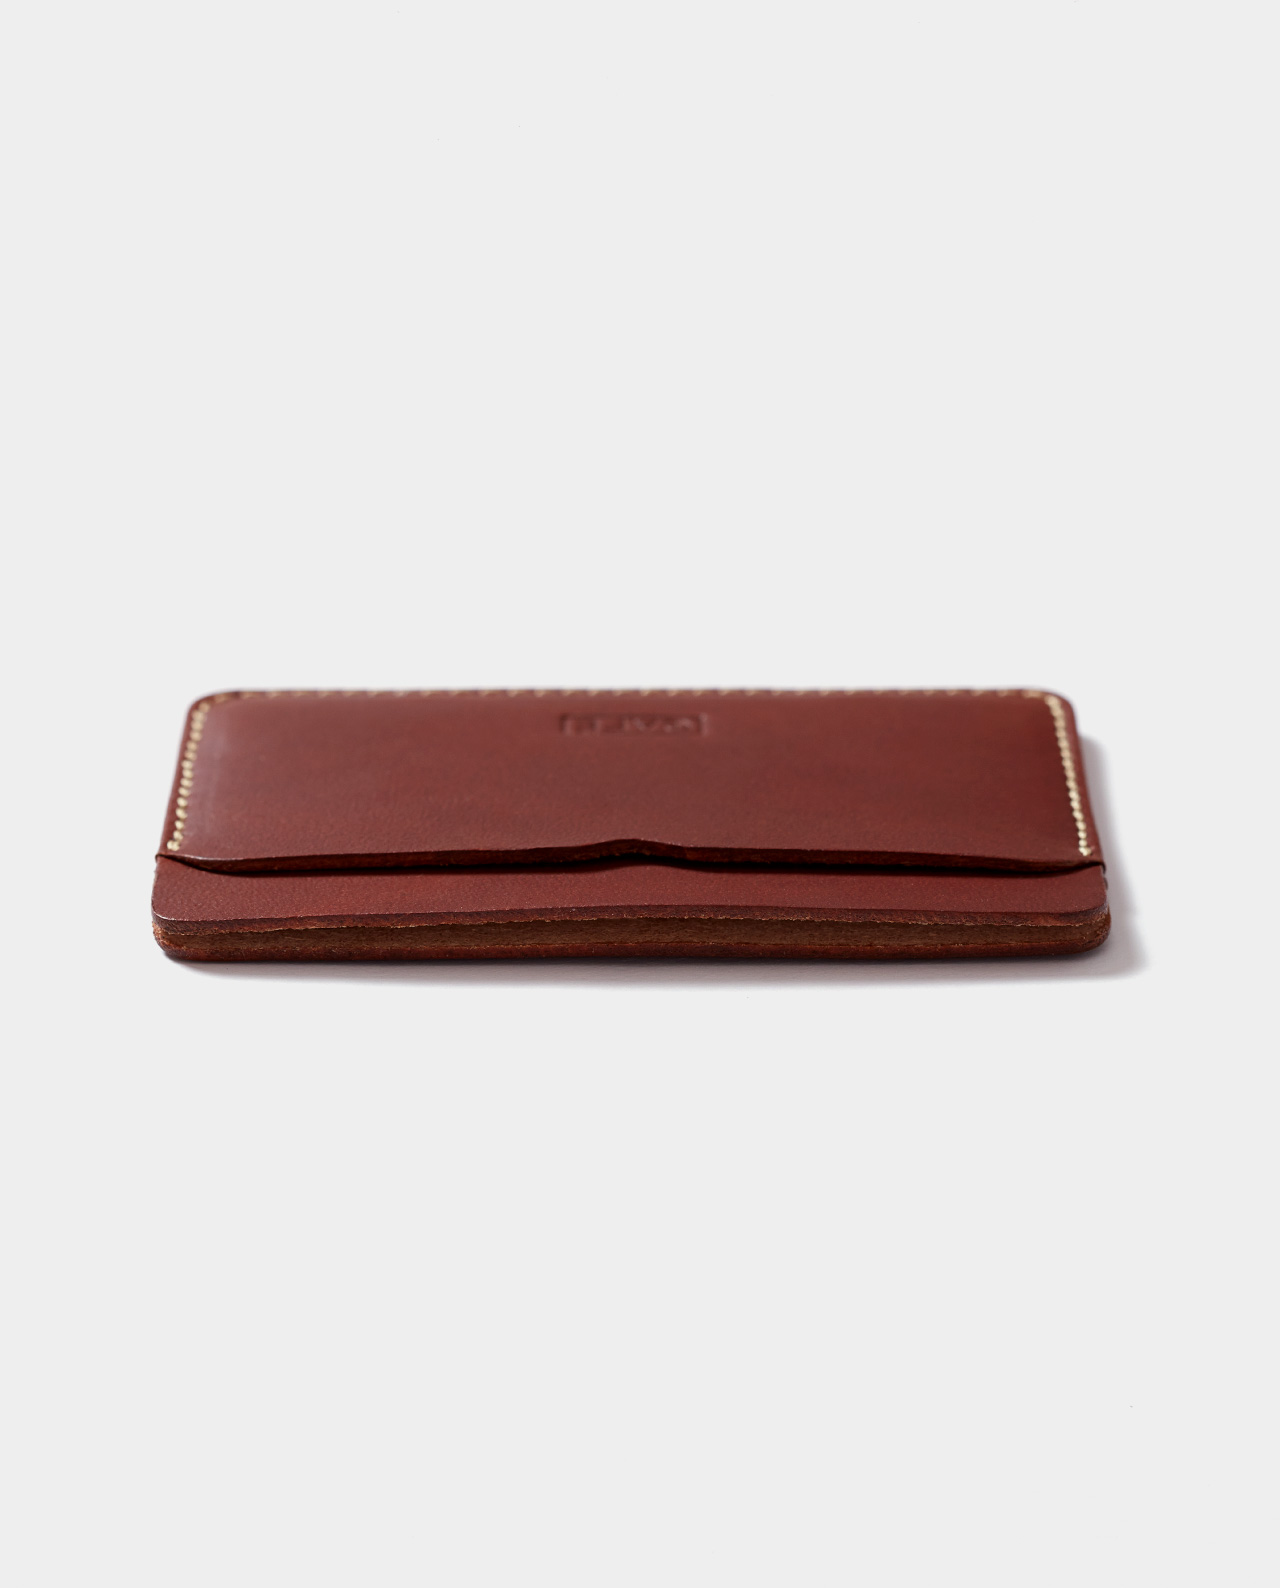 leather card holder brown for cards and bills